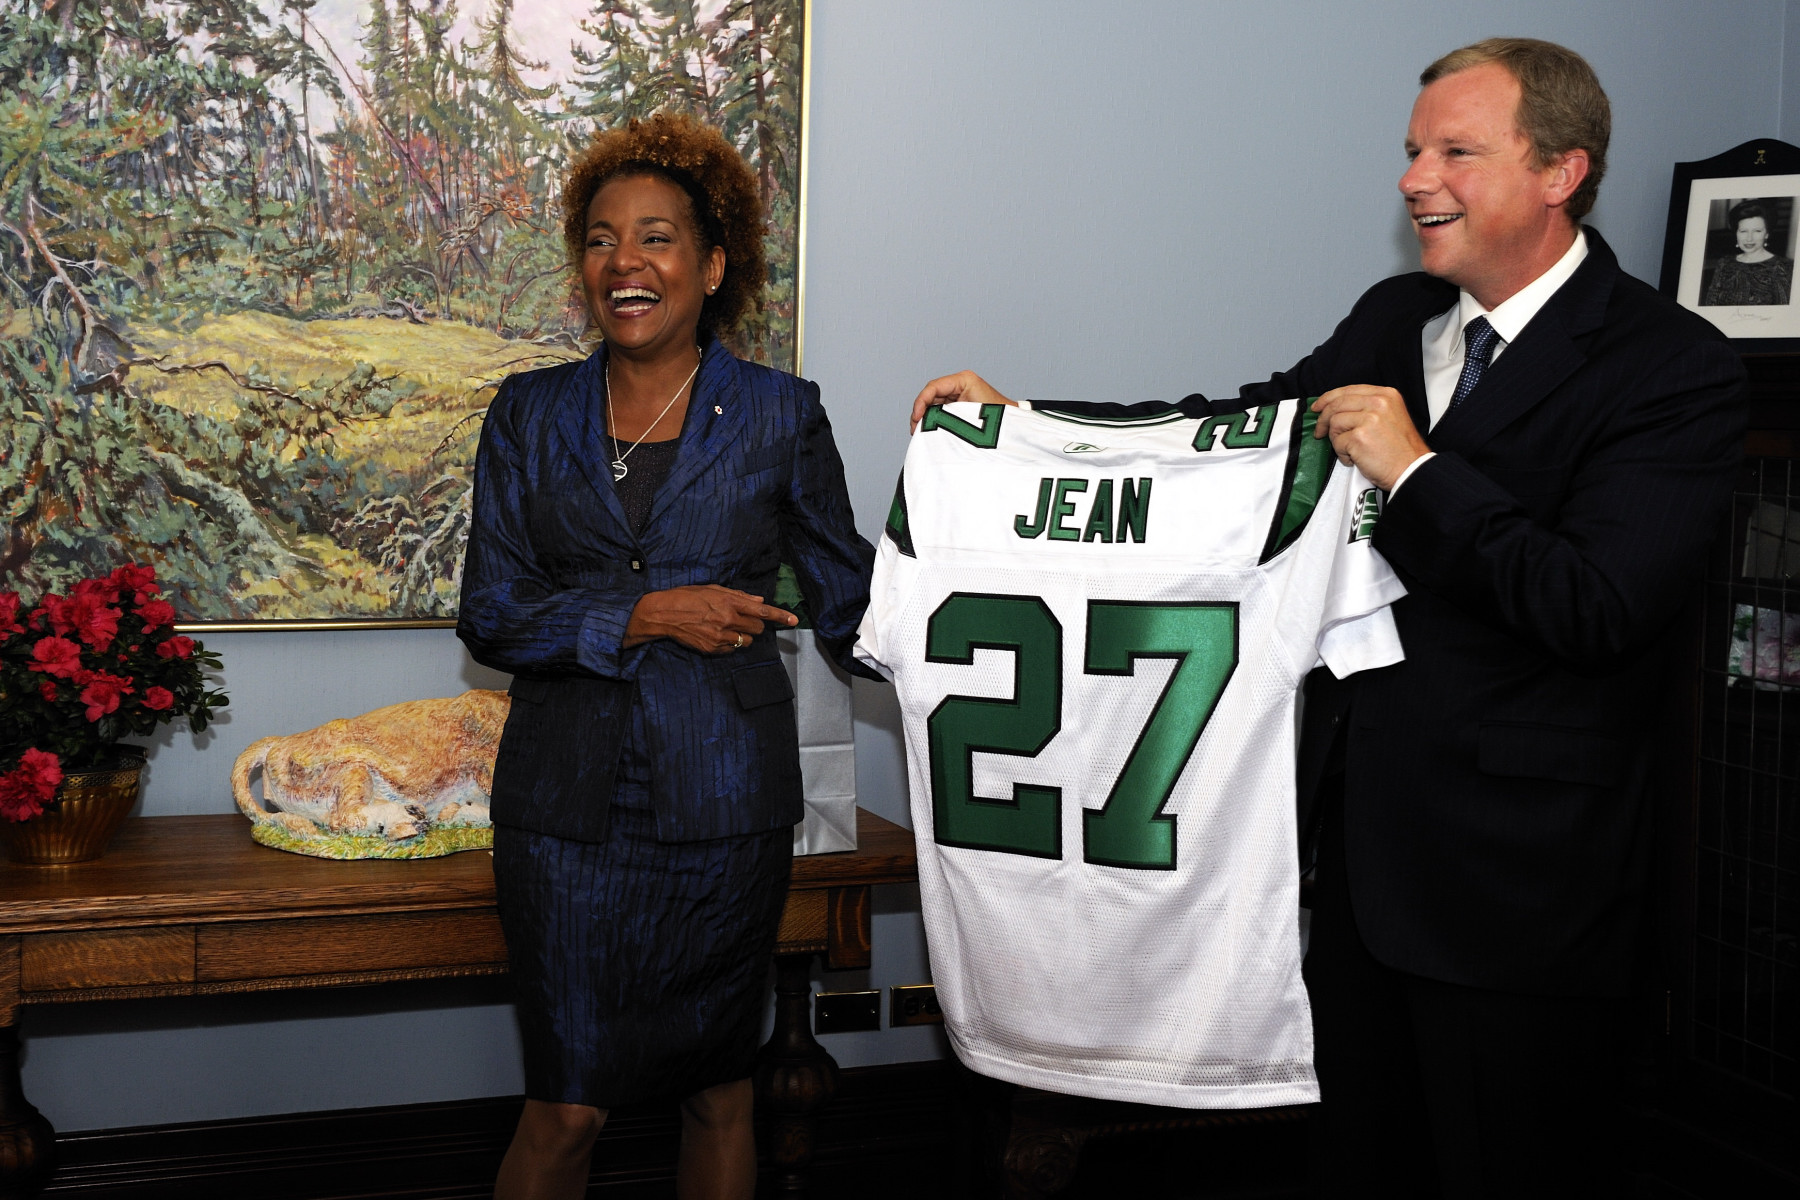 The Governor General met with the Honourable Brad Wall, Premier of Saskatchewan, and was presented with a Canadian Football League Roughriders jersey. It bears her last name and the number 27, to mark her tenure as the 27th Governor General of Canada.